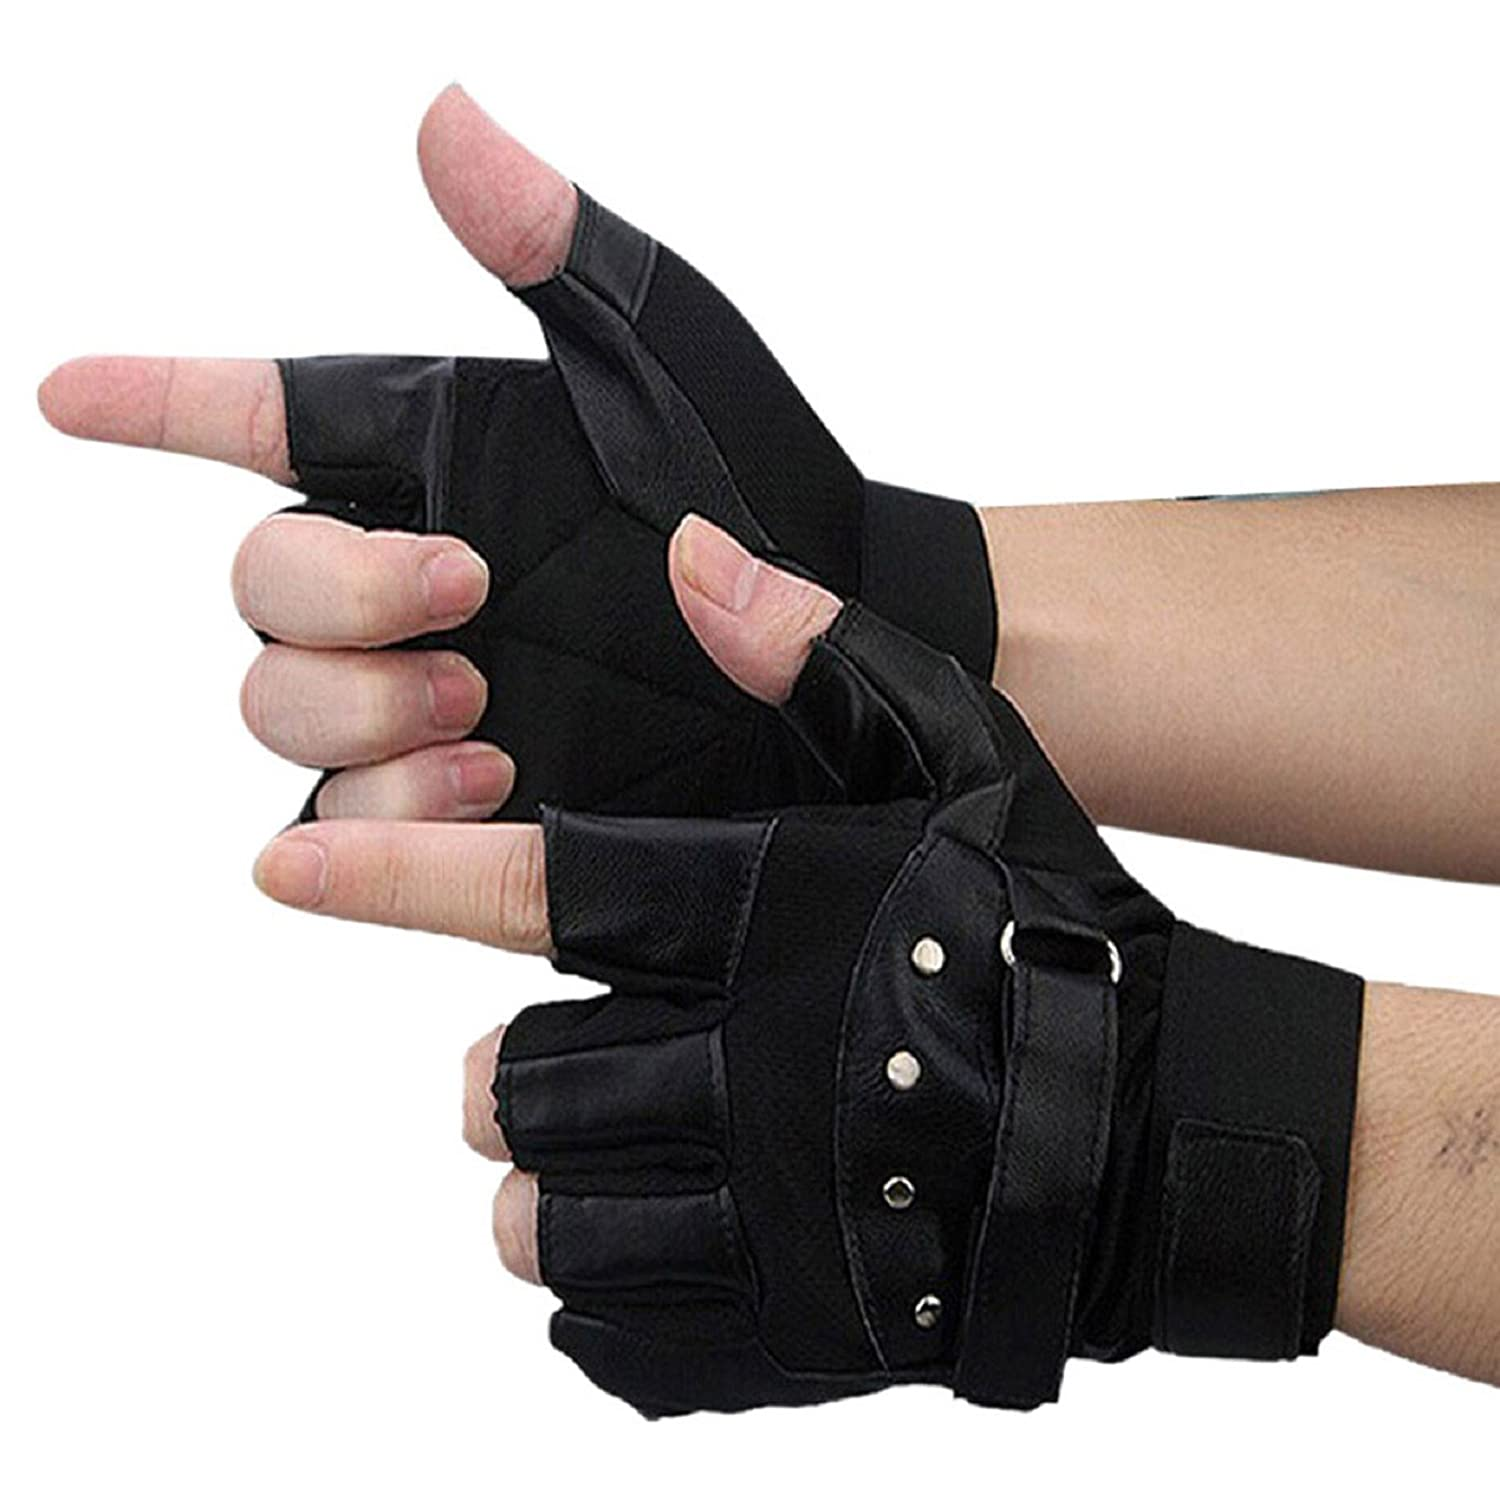 Motorcycle leather gloves amazon - Coromose Men Soft Leather Driving Motorcycle Biker Fingerless Warm Gloves At Amazon Men S Clothing Store